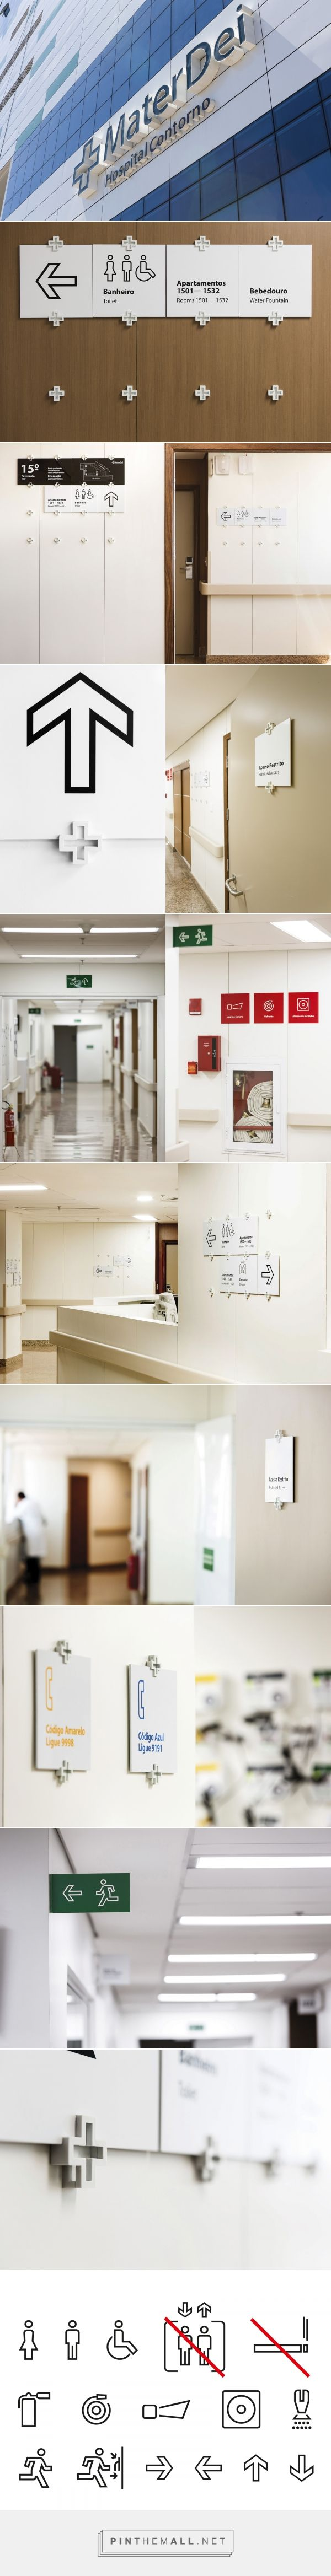 Sinalização Hospital Mater Dei Contorno |  Greco Design - created via https://pinthemall.net